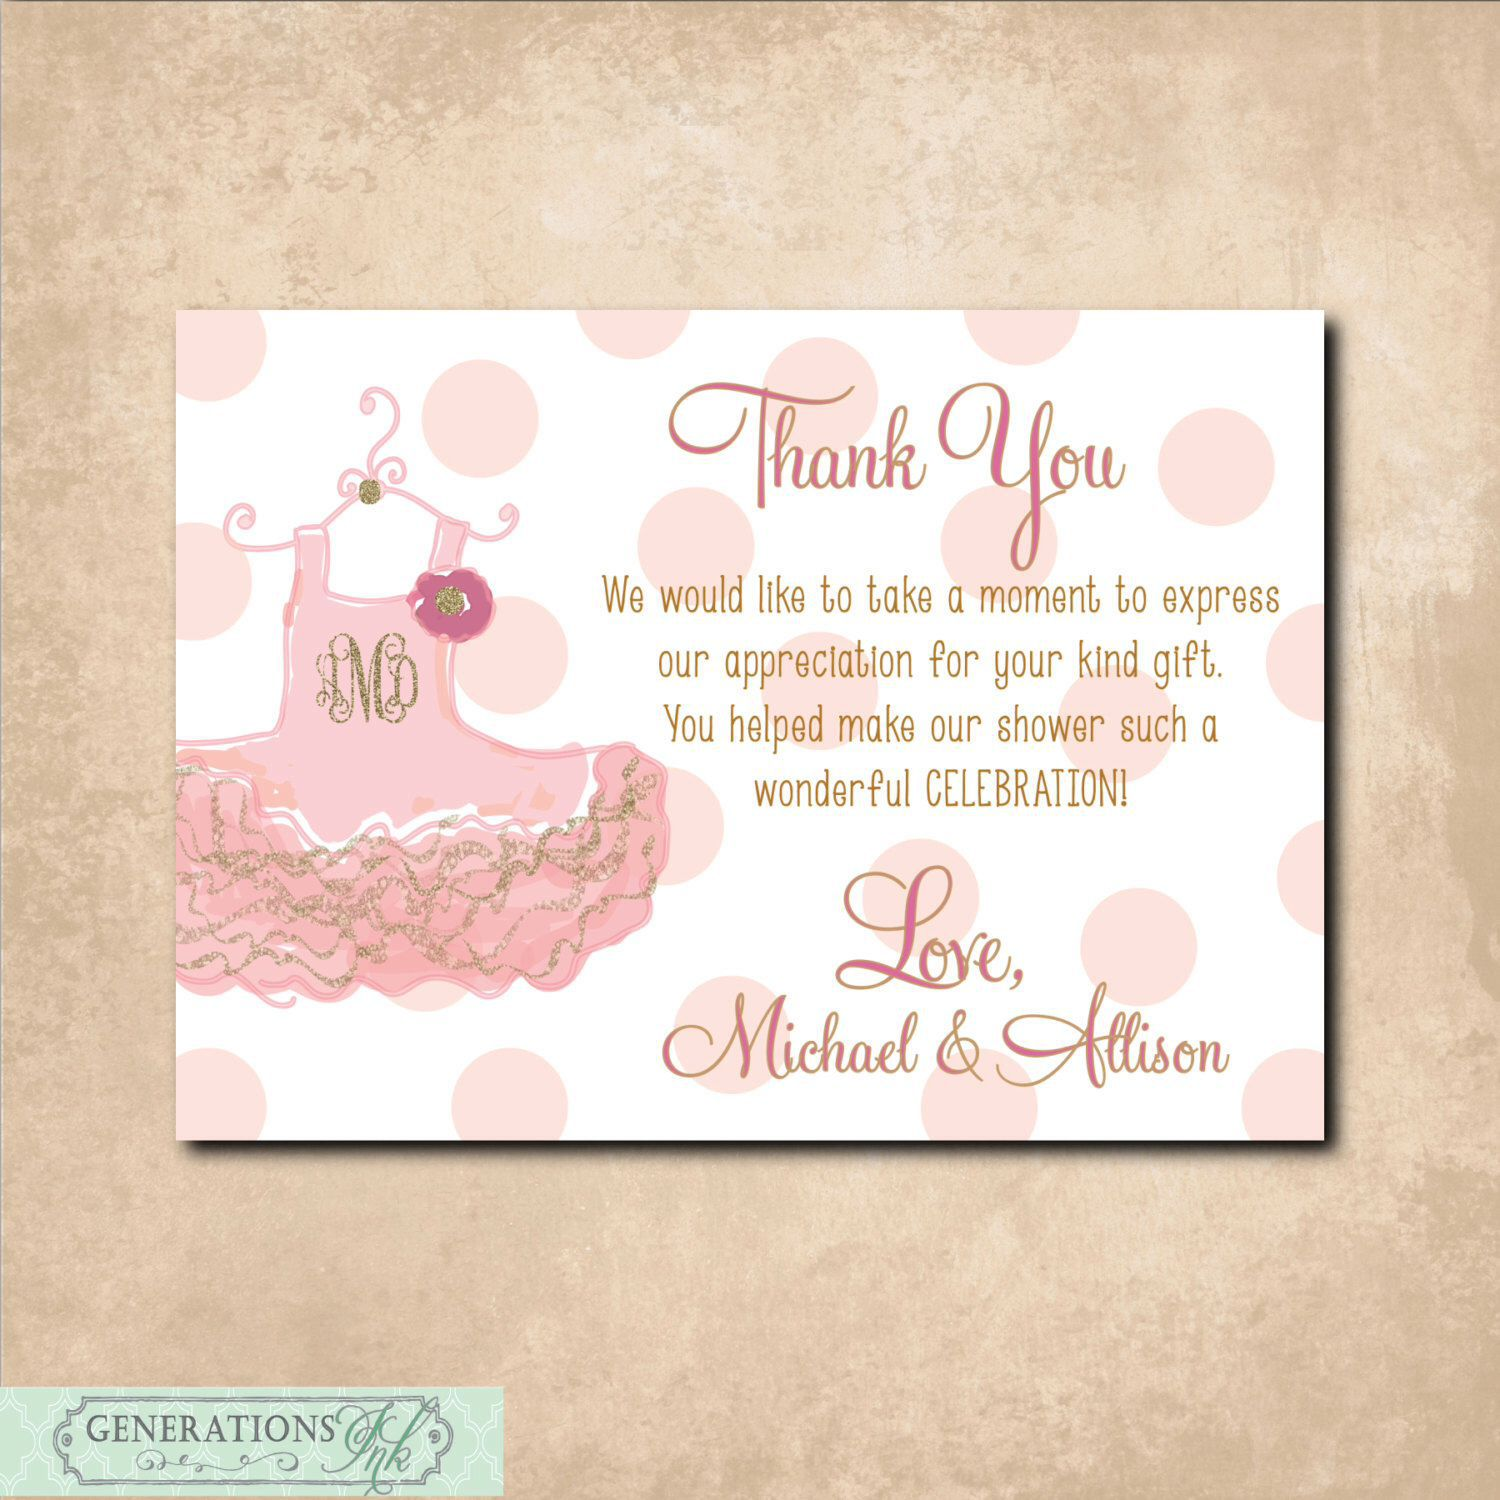 003 Unique Thank You Note Template For Baby Shower Gift Picture  Card Letter SampleFull